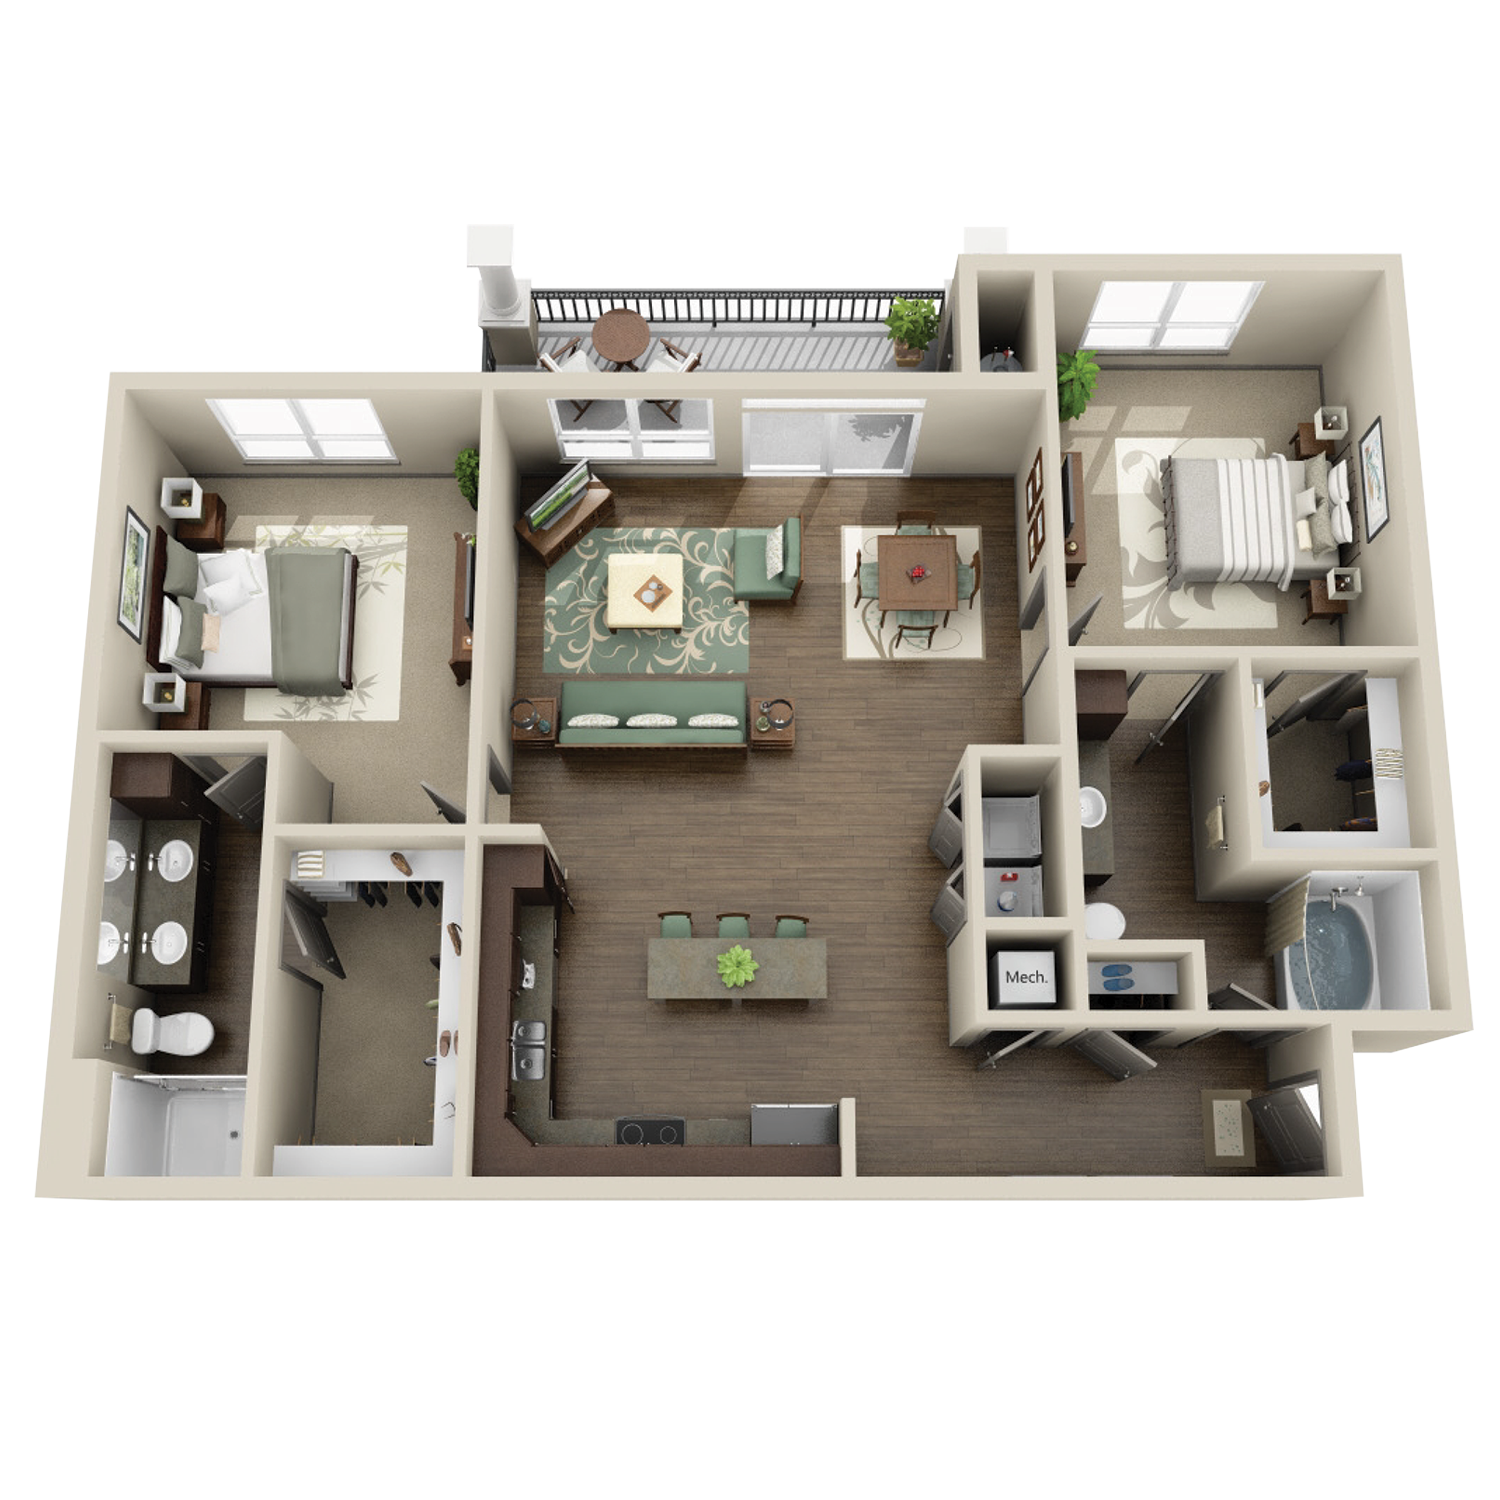 B3A floor plan featuring 2 bed and 2 baths